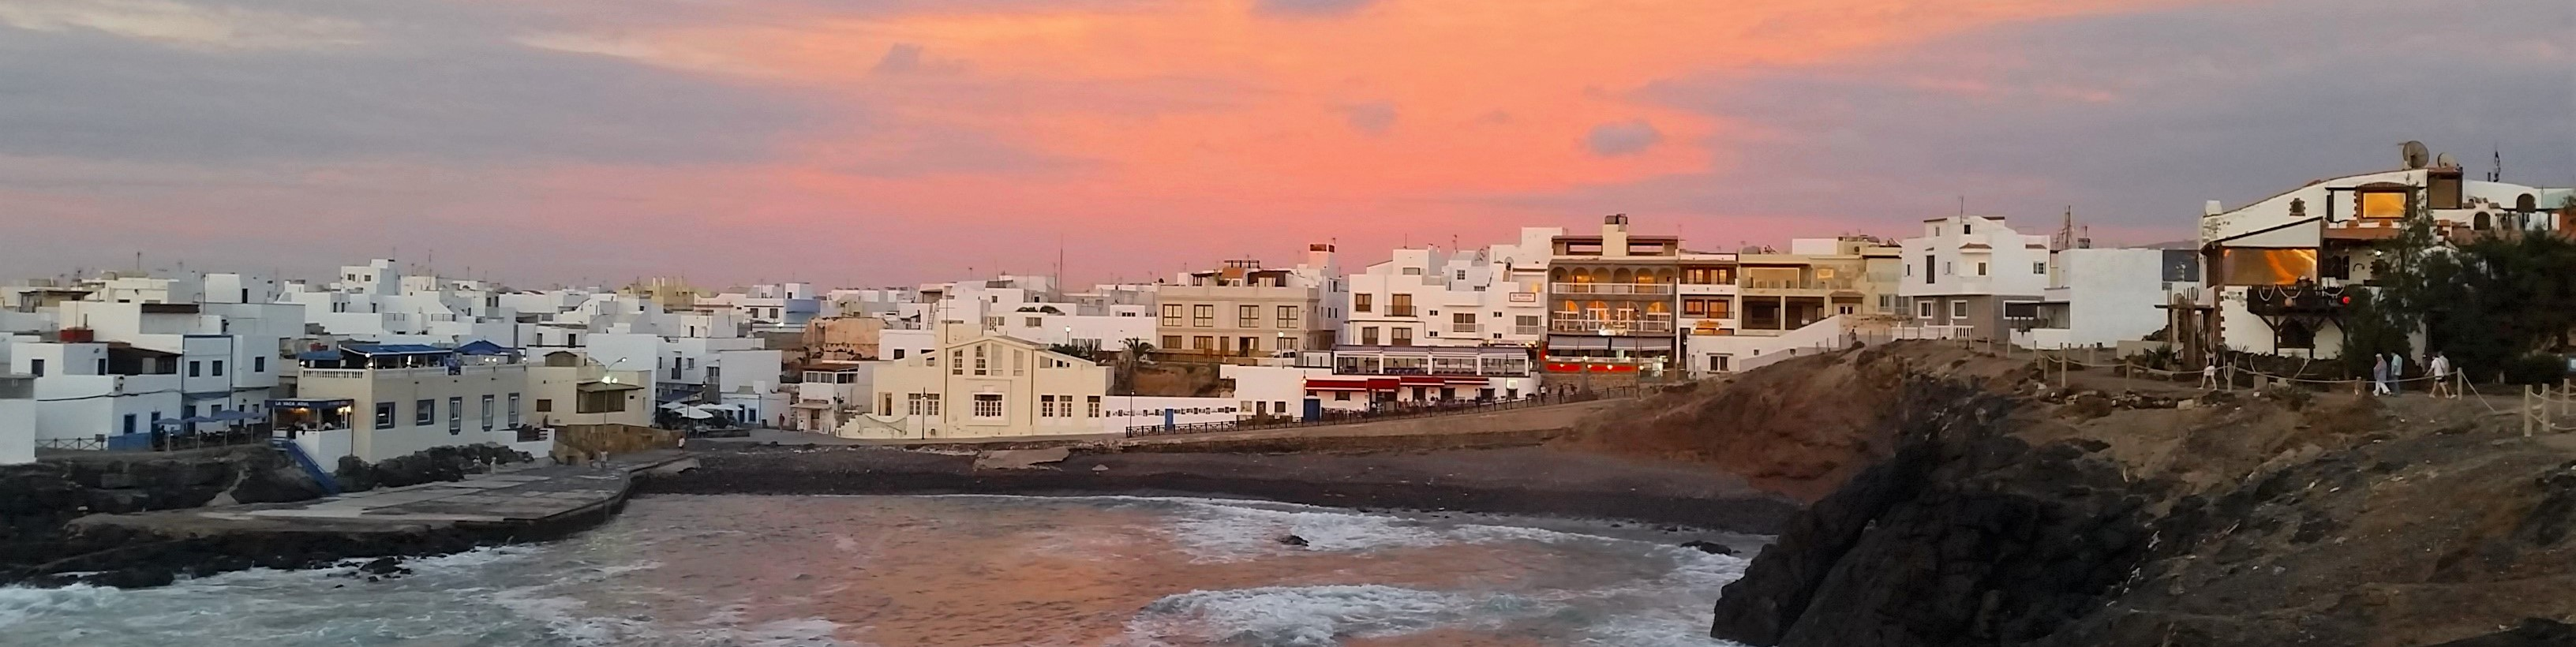 The town of EL COTILLO